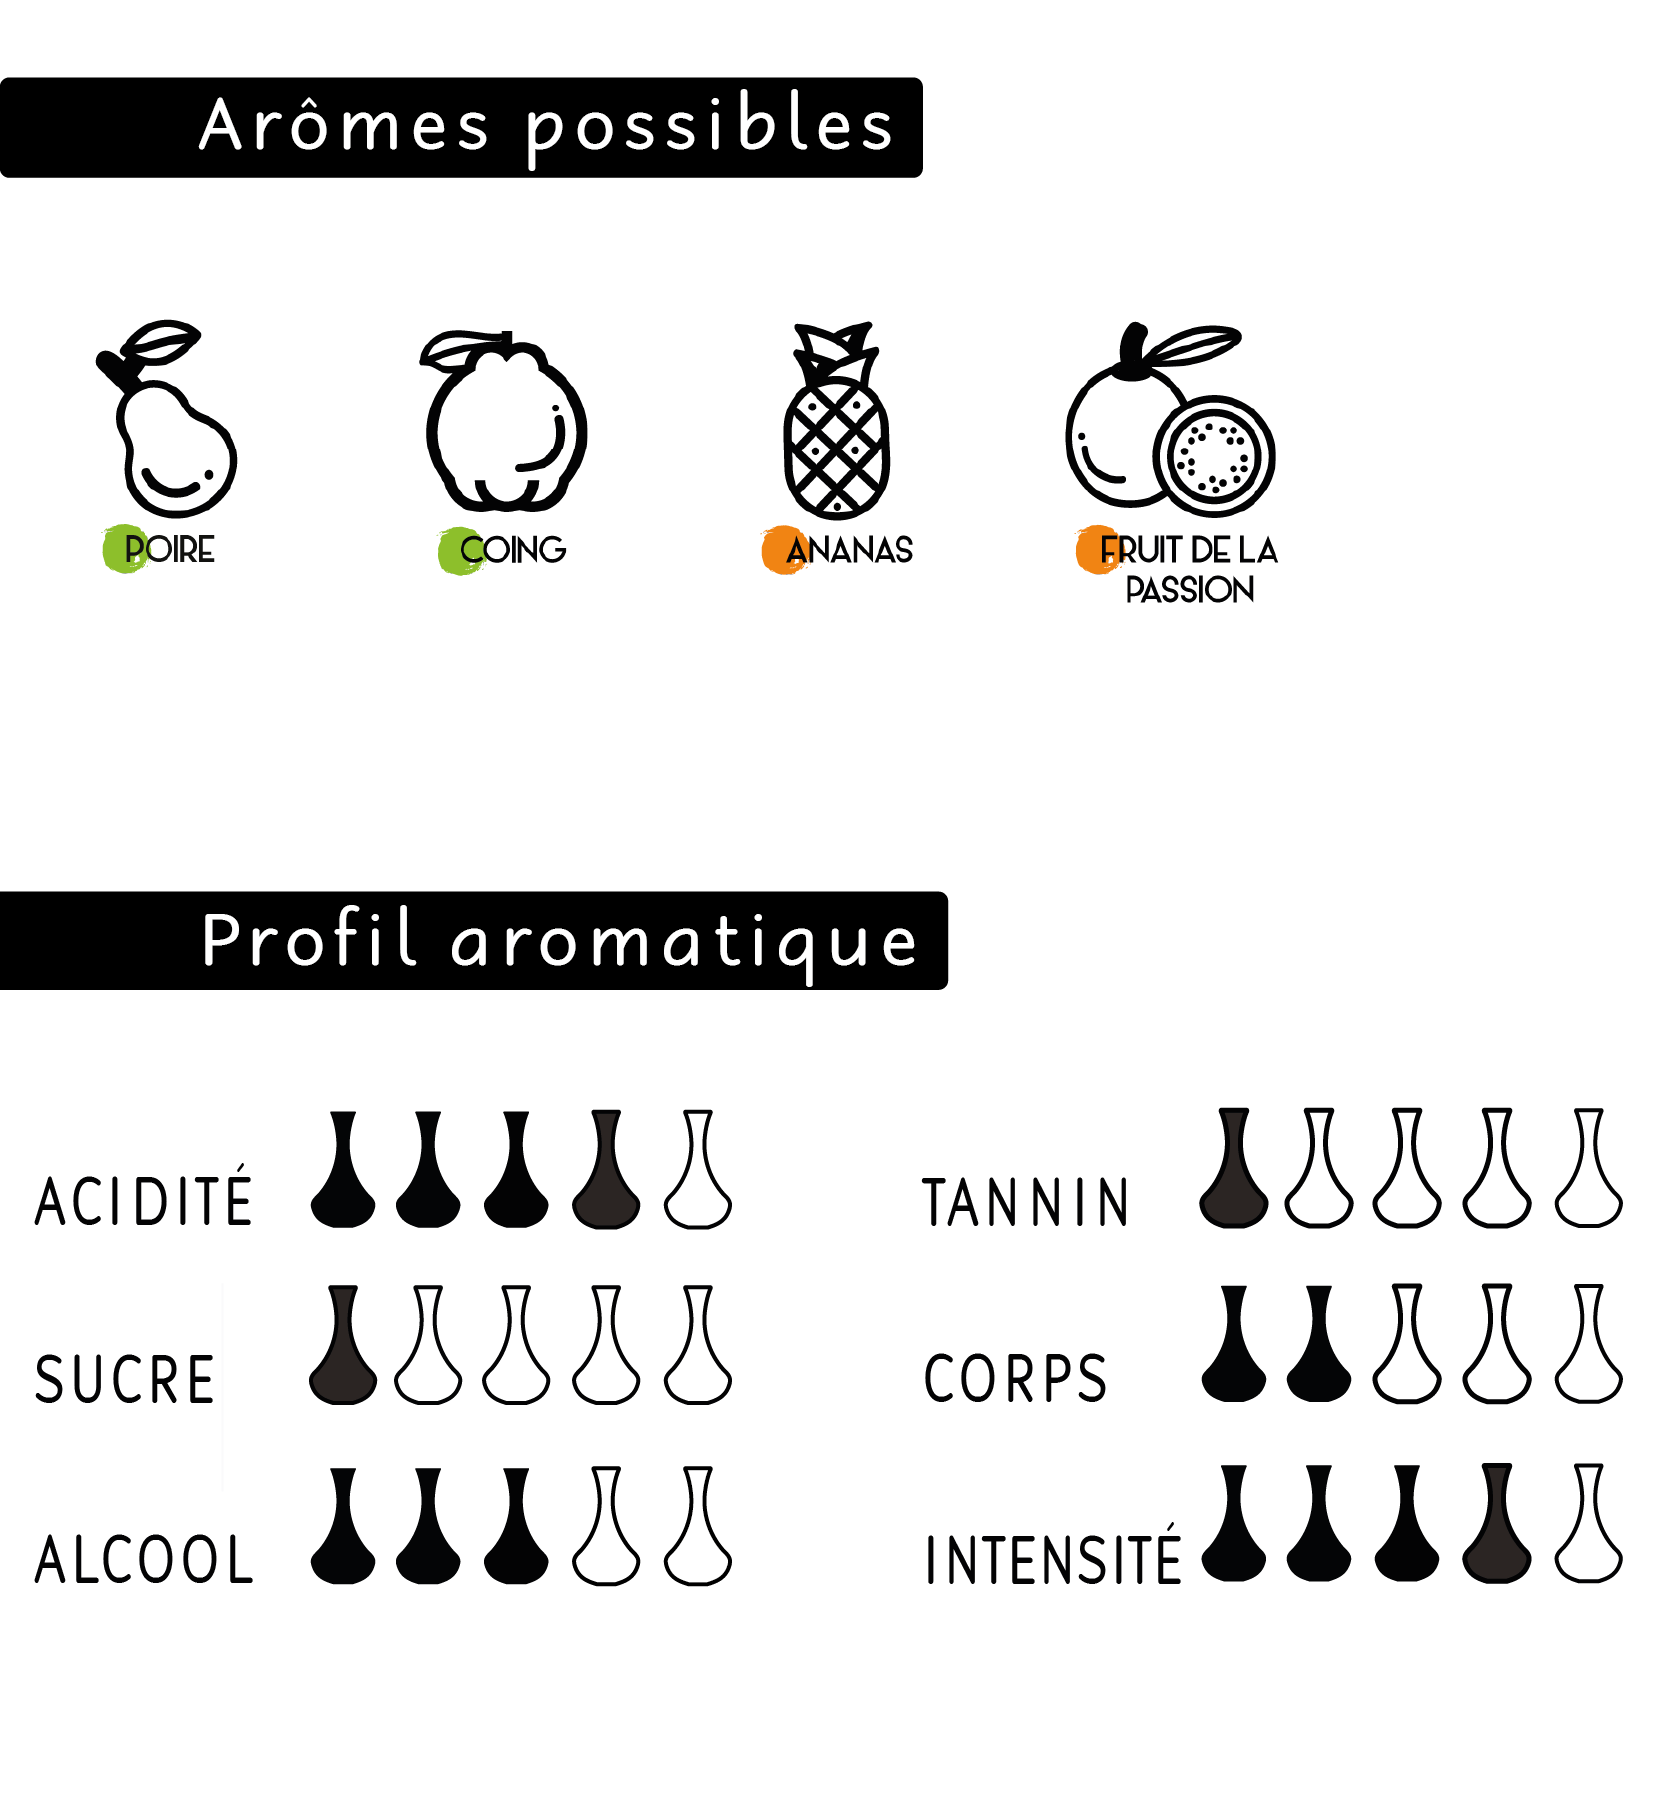 Sylvain Leest, Feuilles blanches, 2017, Arômes possibles, into my cellar